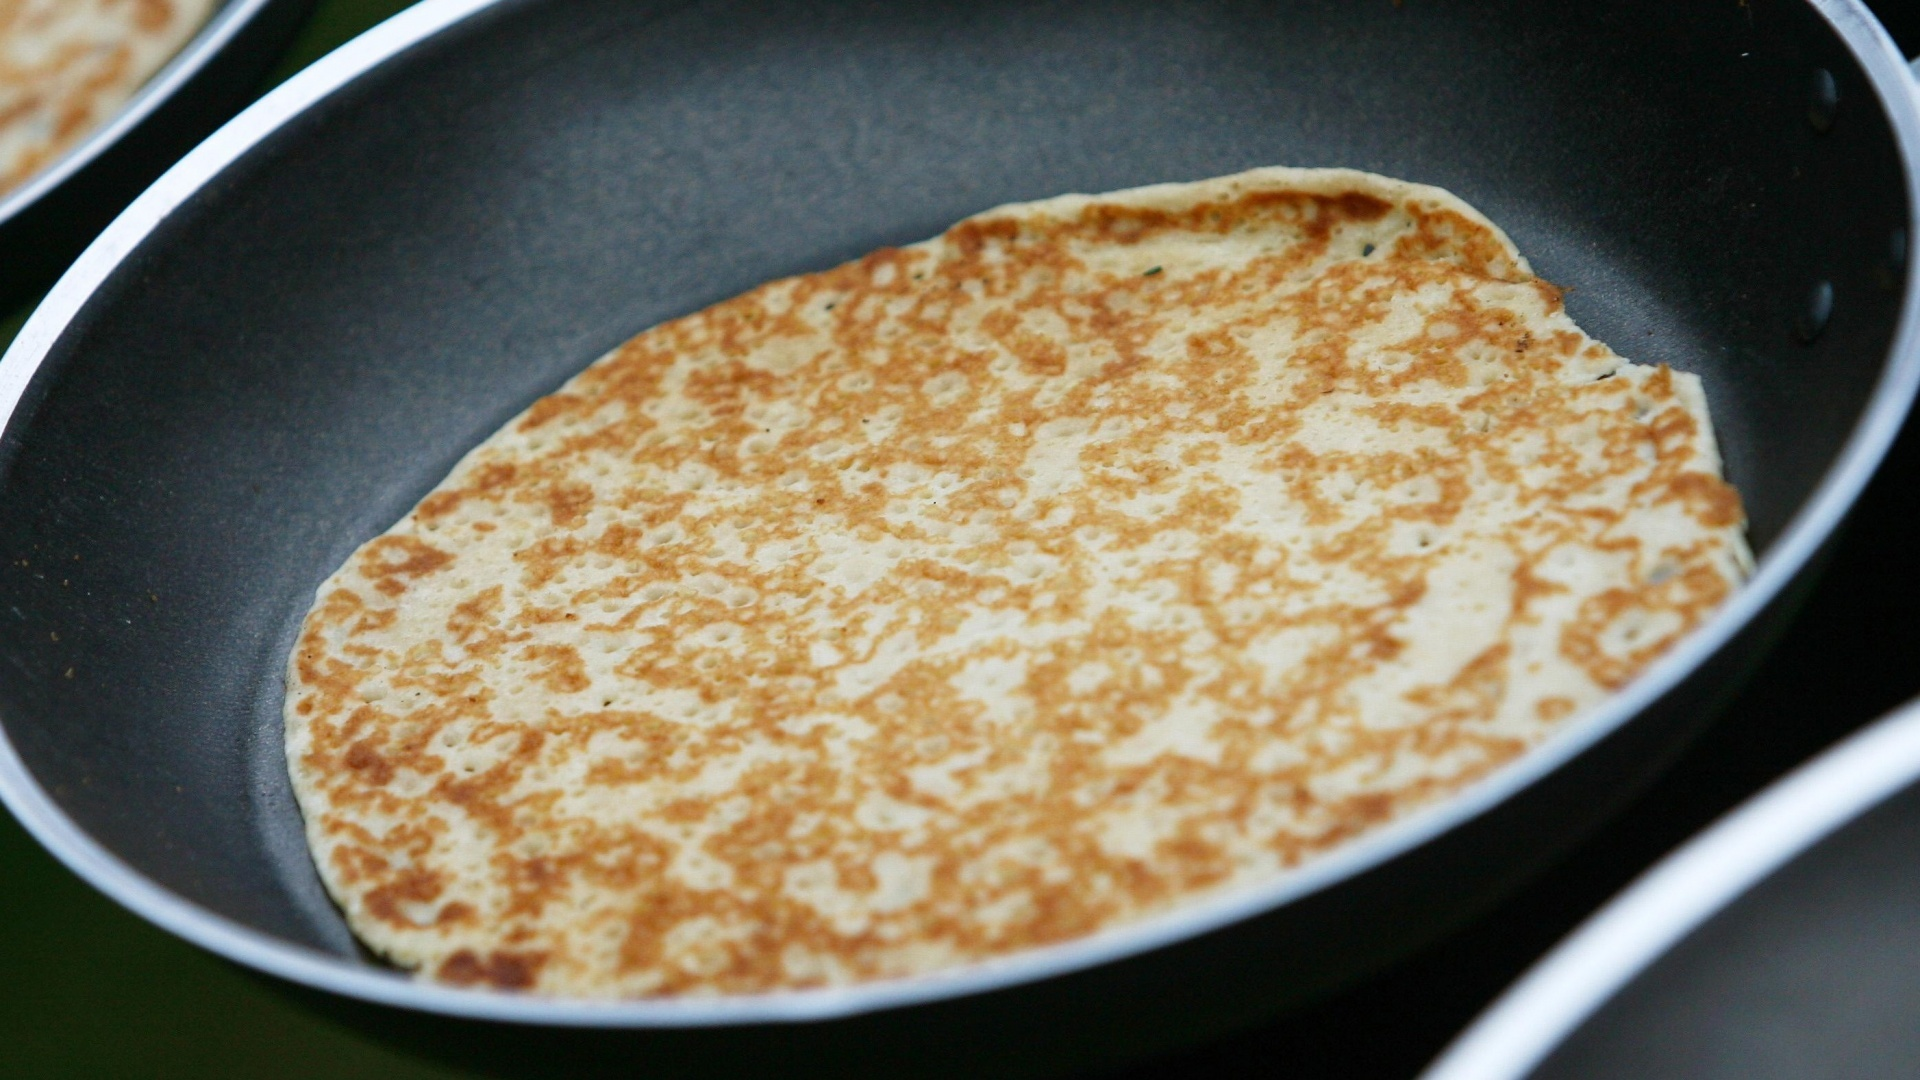 A pancake in a frying pan about to be flipped